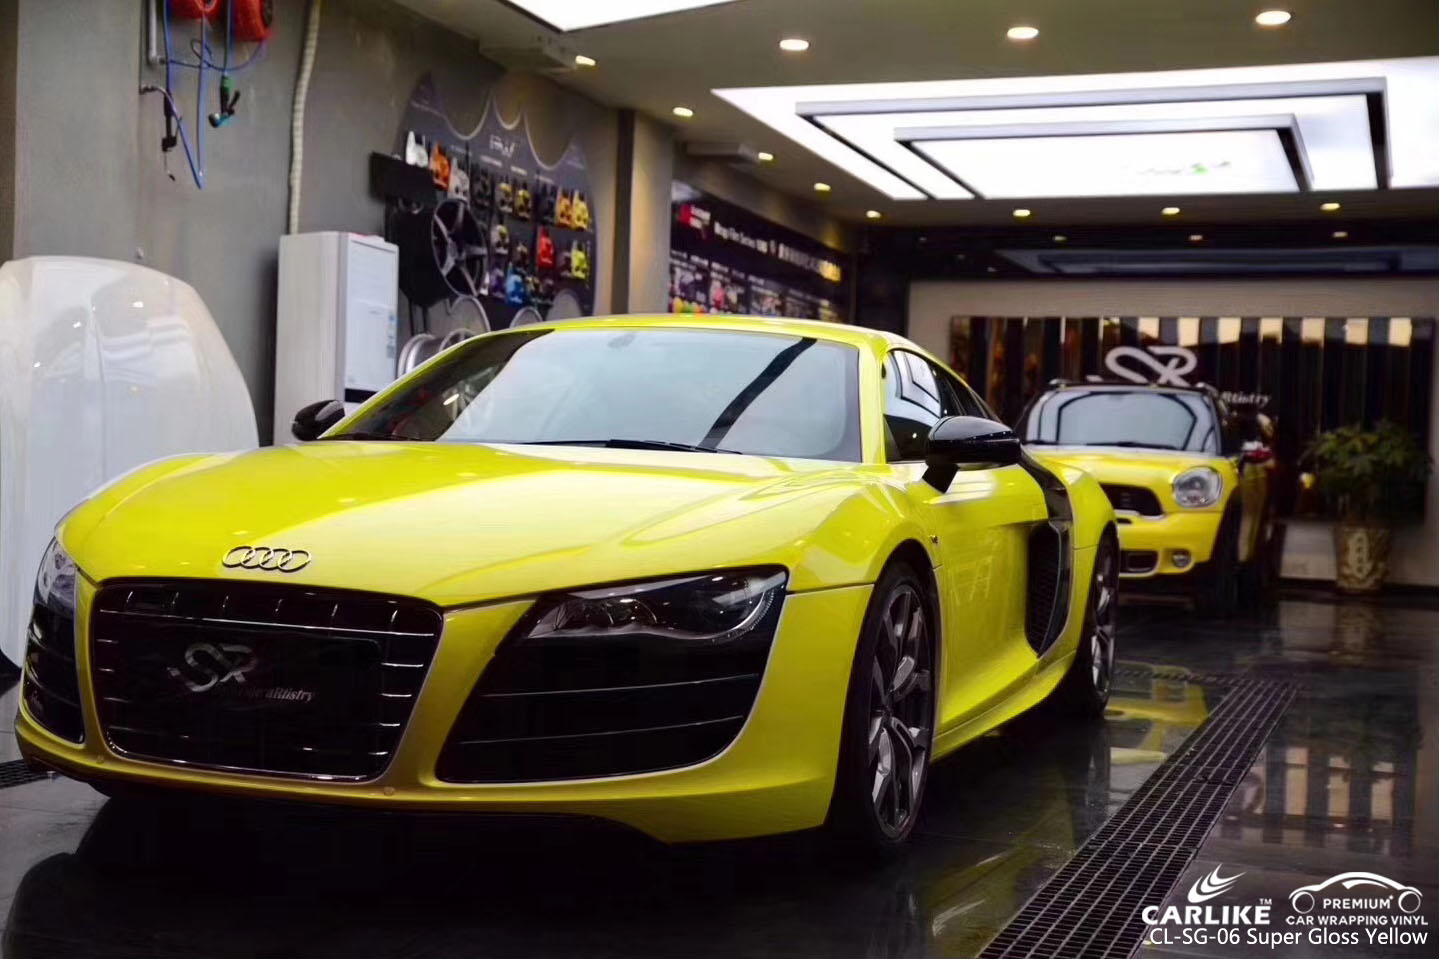 CARLIKE CL-SG-06 SUPER GLOSS YELLOW VINYL FOR AUDI